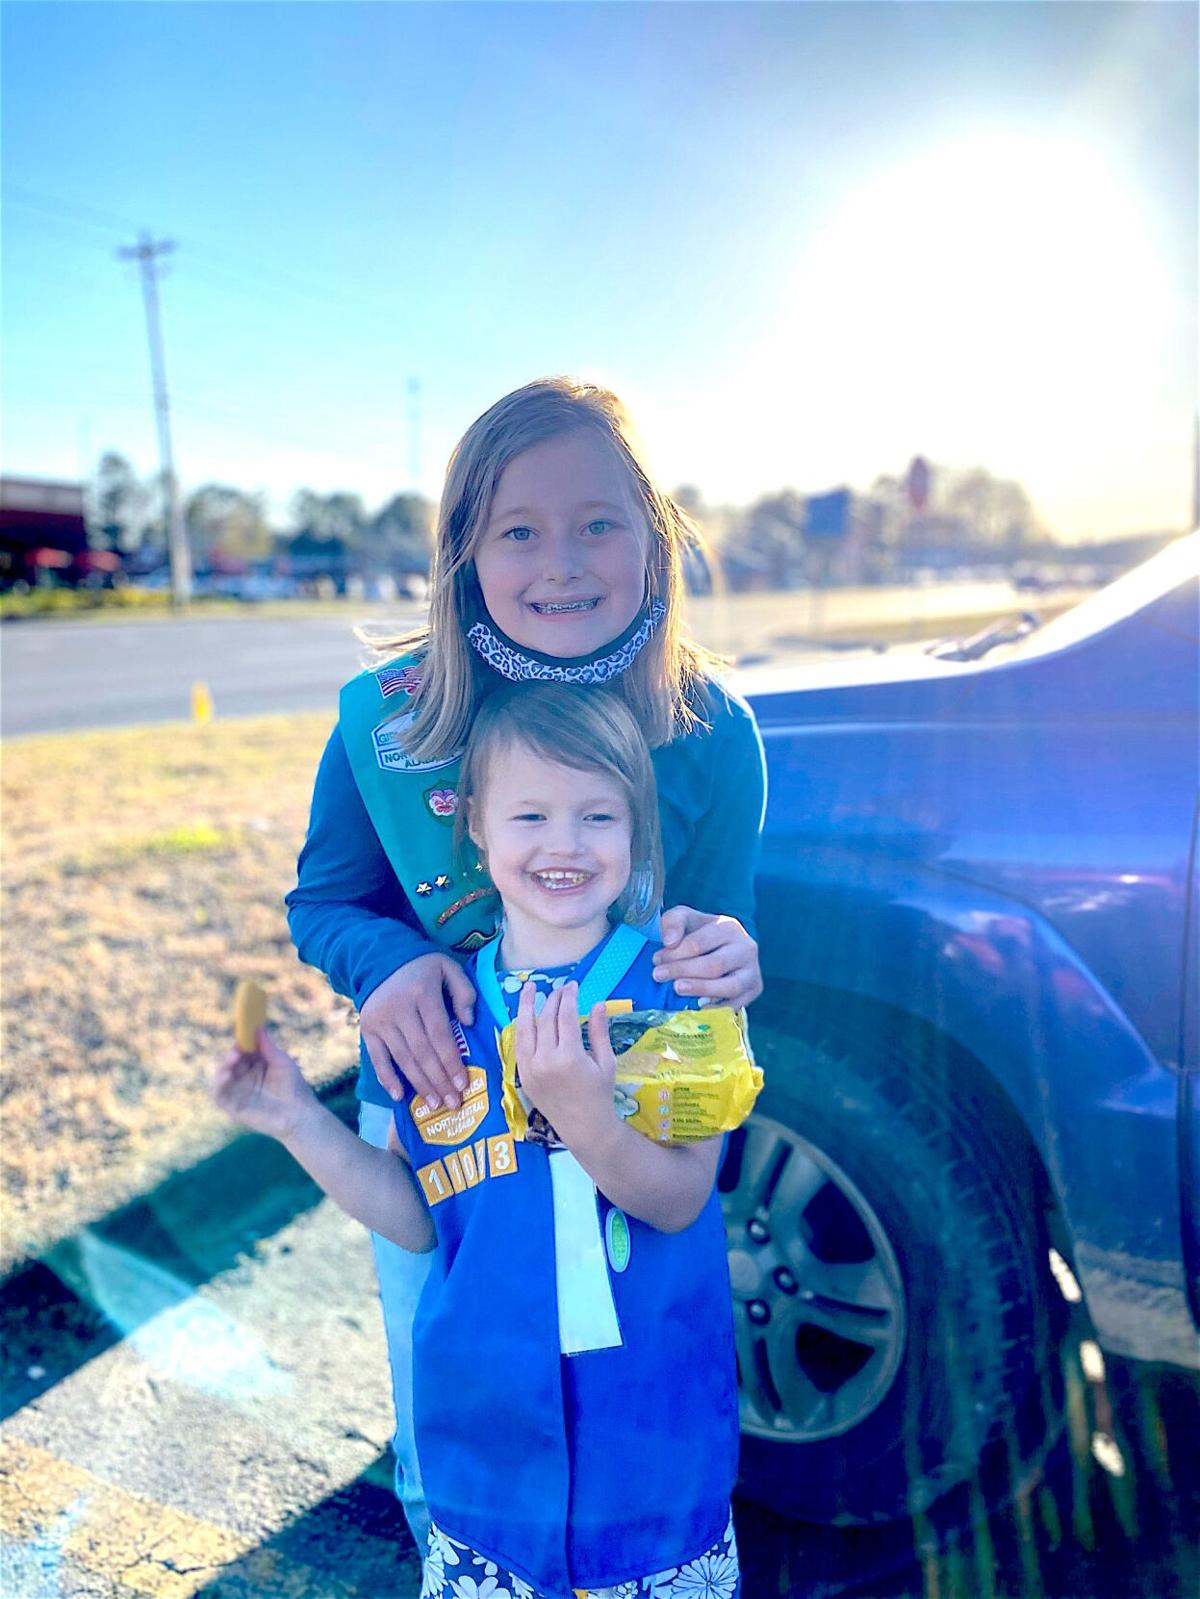 COVID takes a bite out of cookie sales